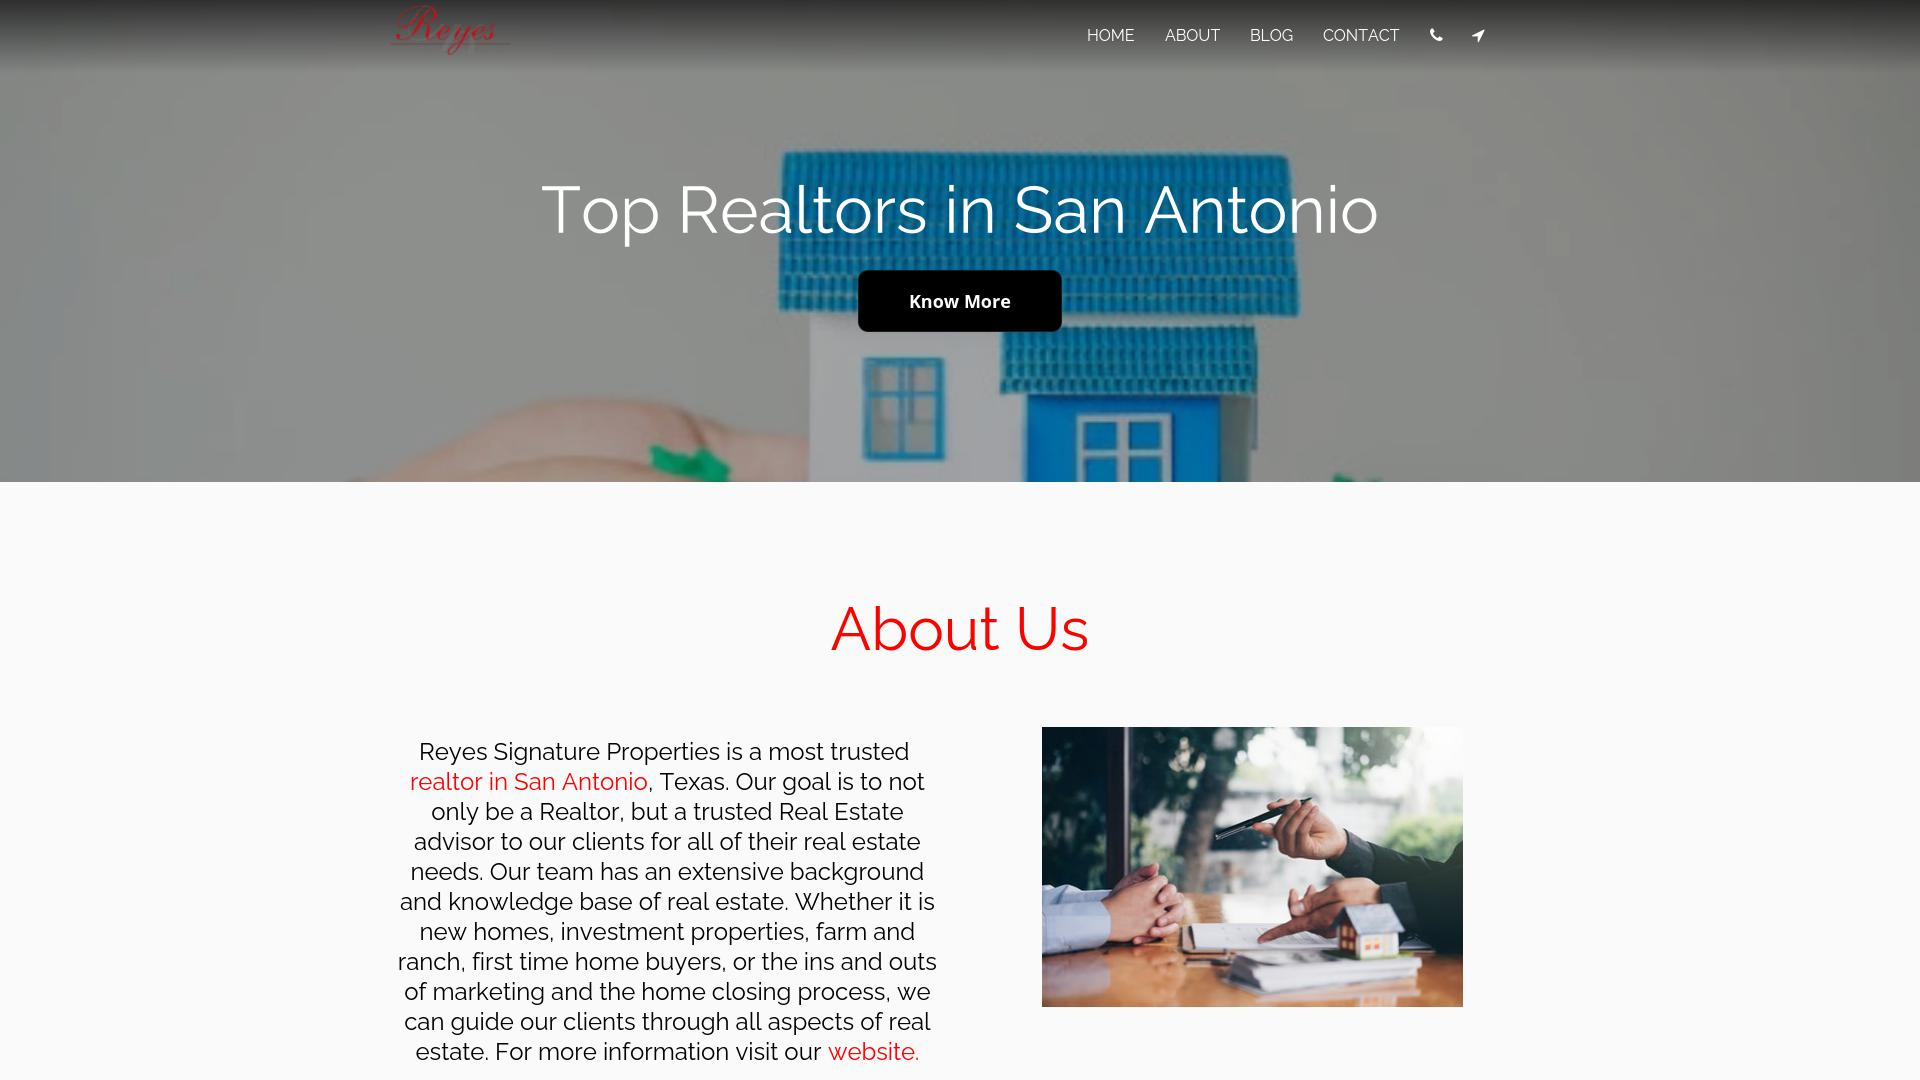 Reyes Signature Properties - Rent Vs. Buy: Which Is The Better Option?